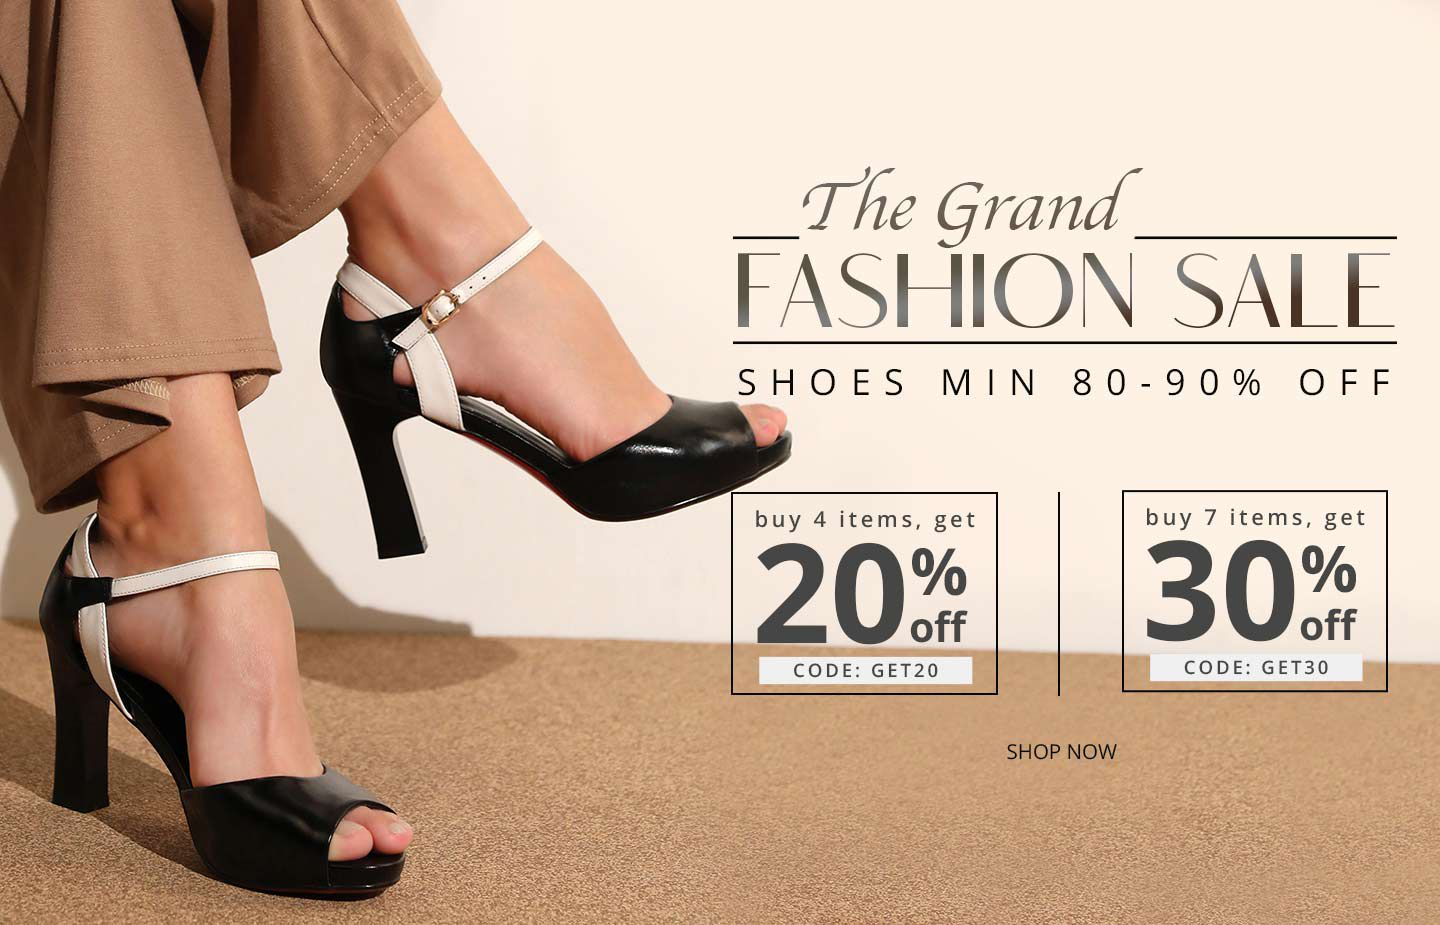 The Great Fashion Sale